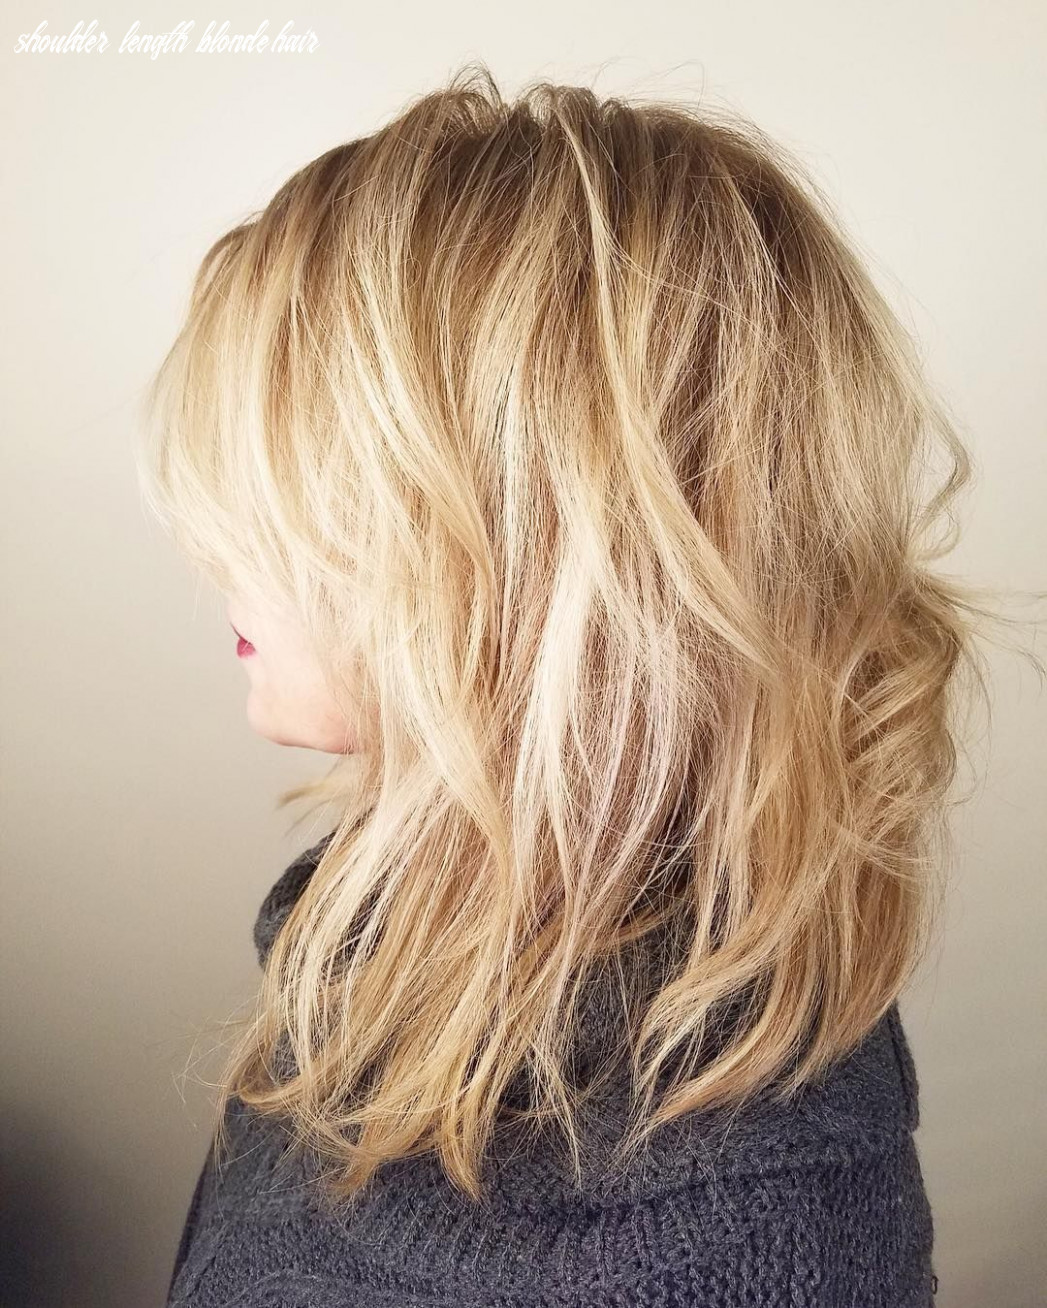 Pin on medium length layered hairstyles shoulder length blonde hair